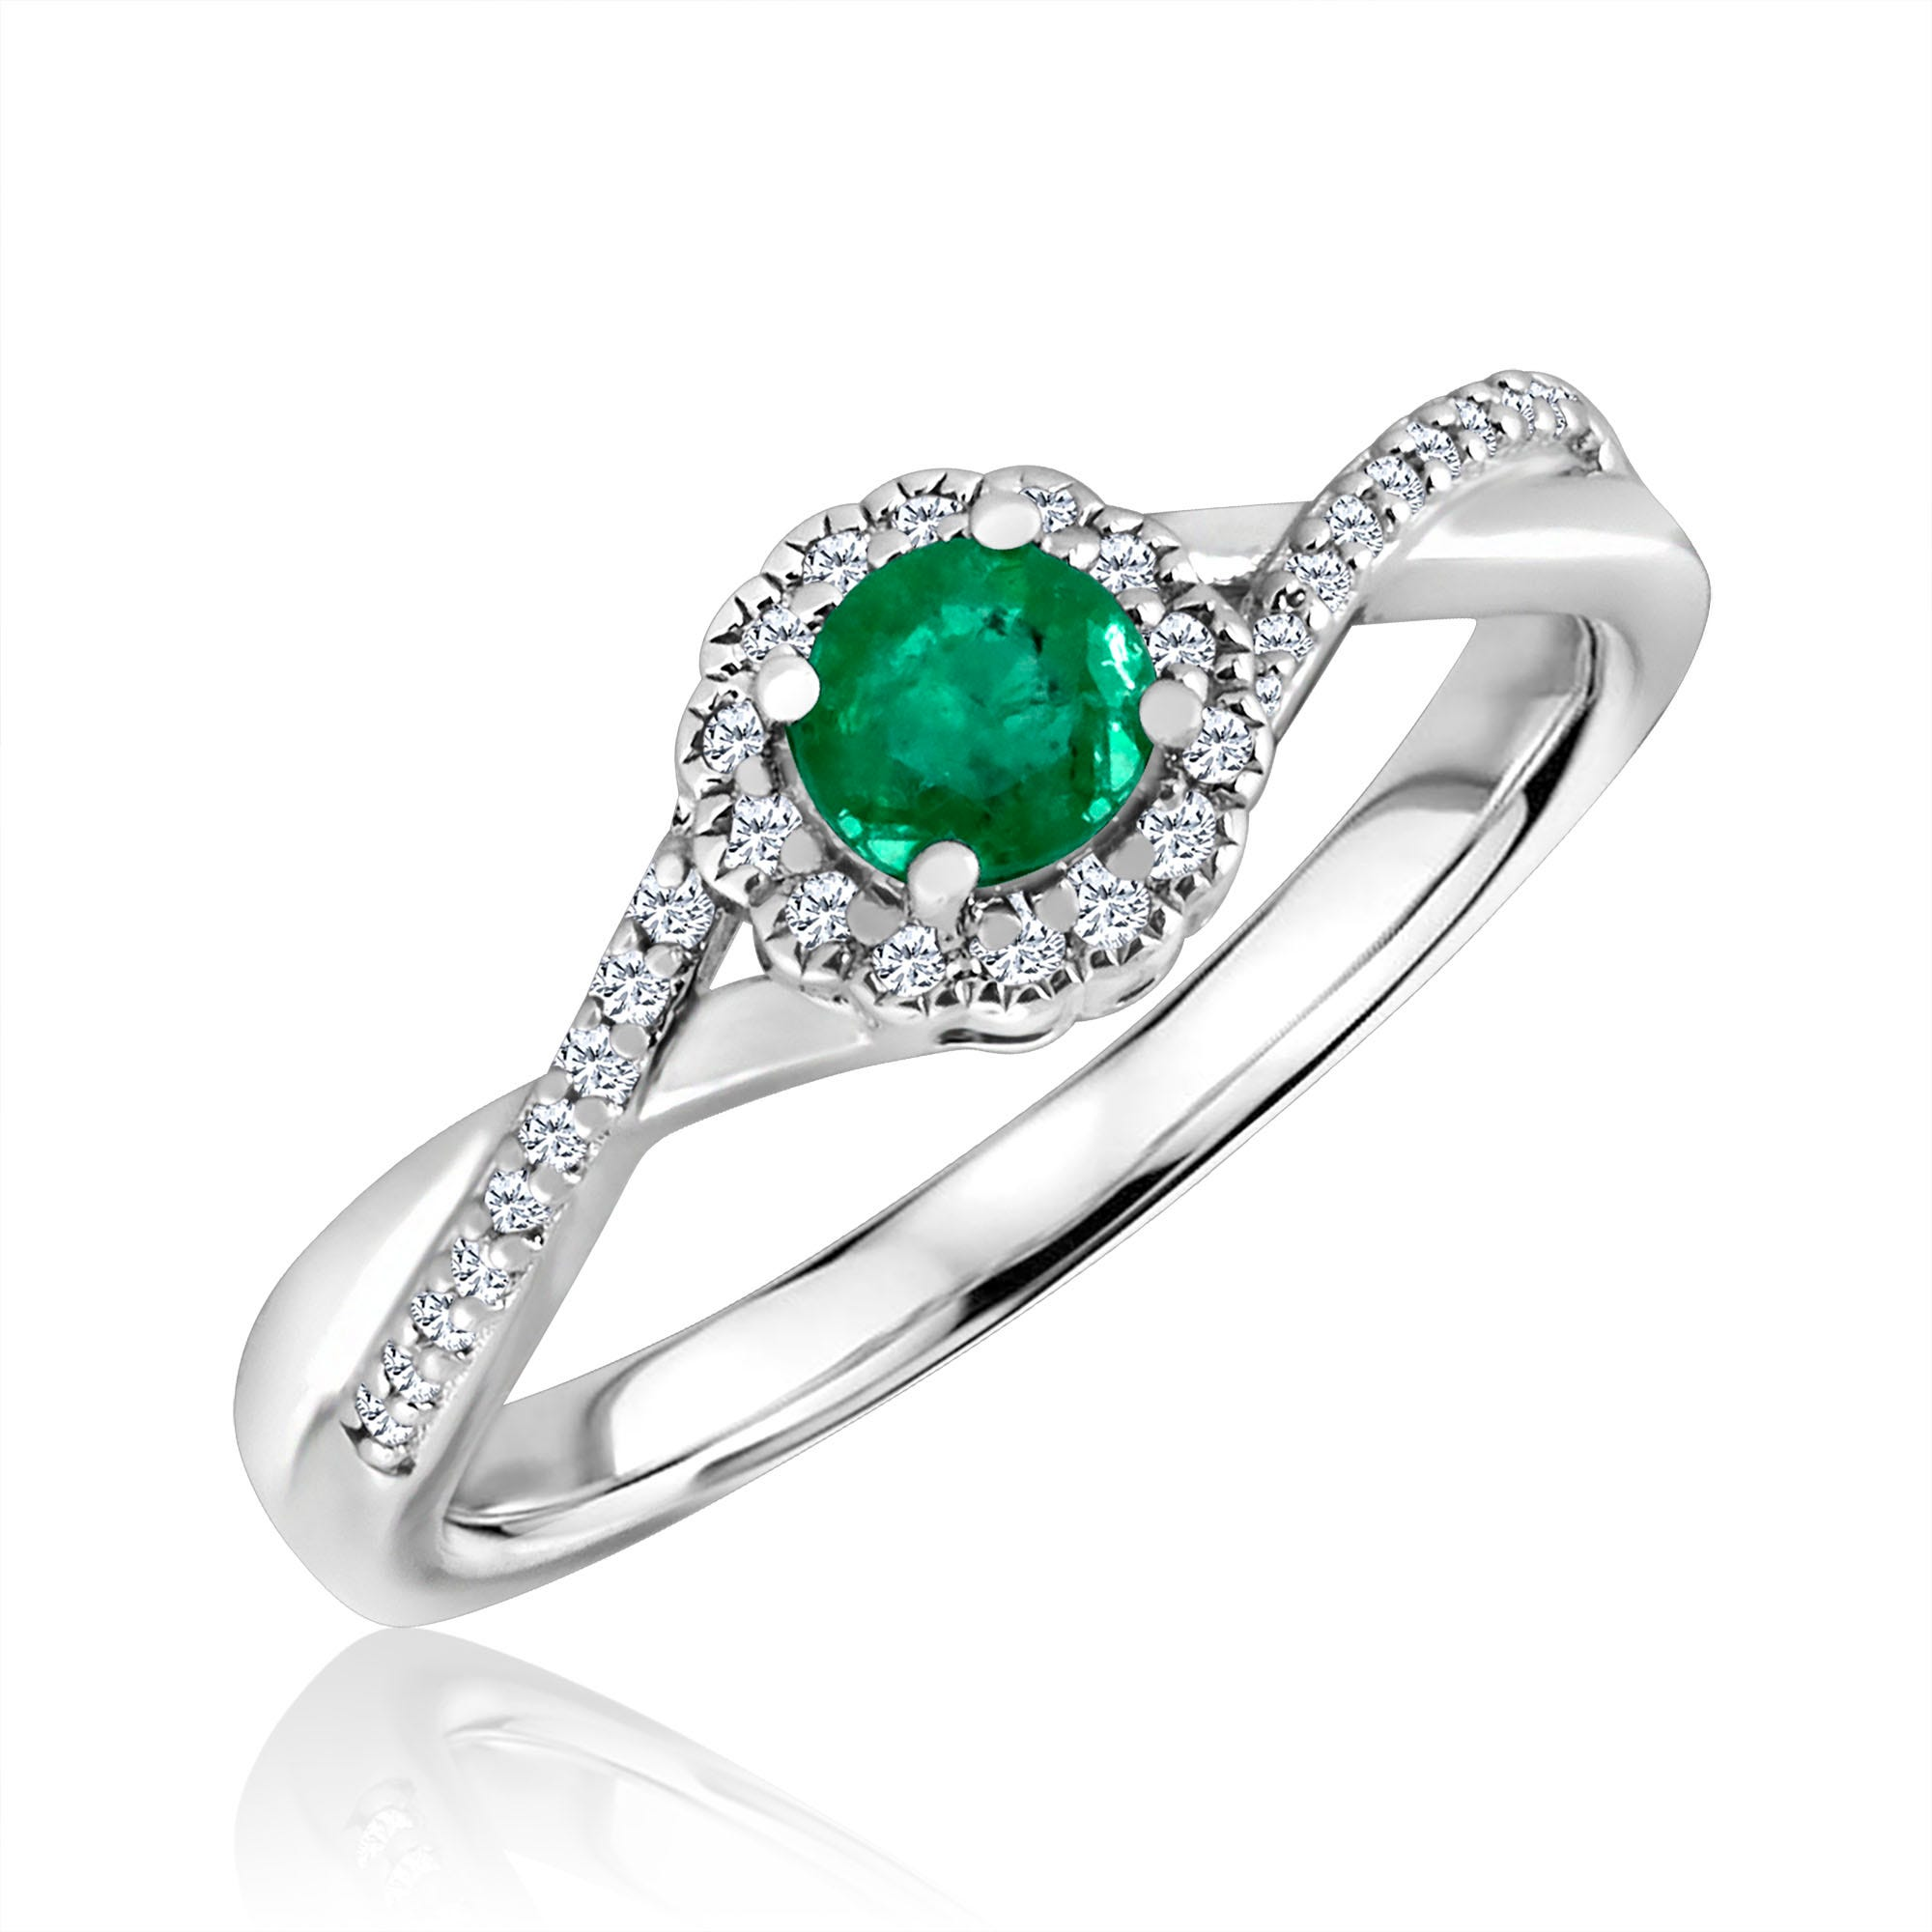 Round-Cut Emerald & Diamond Infinity Ring in Sterling Silver